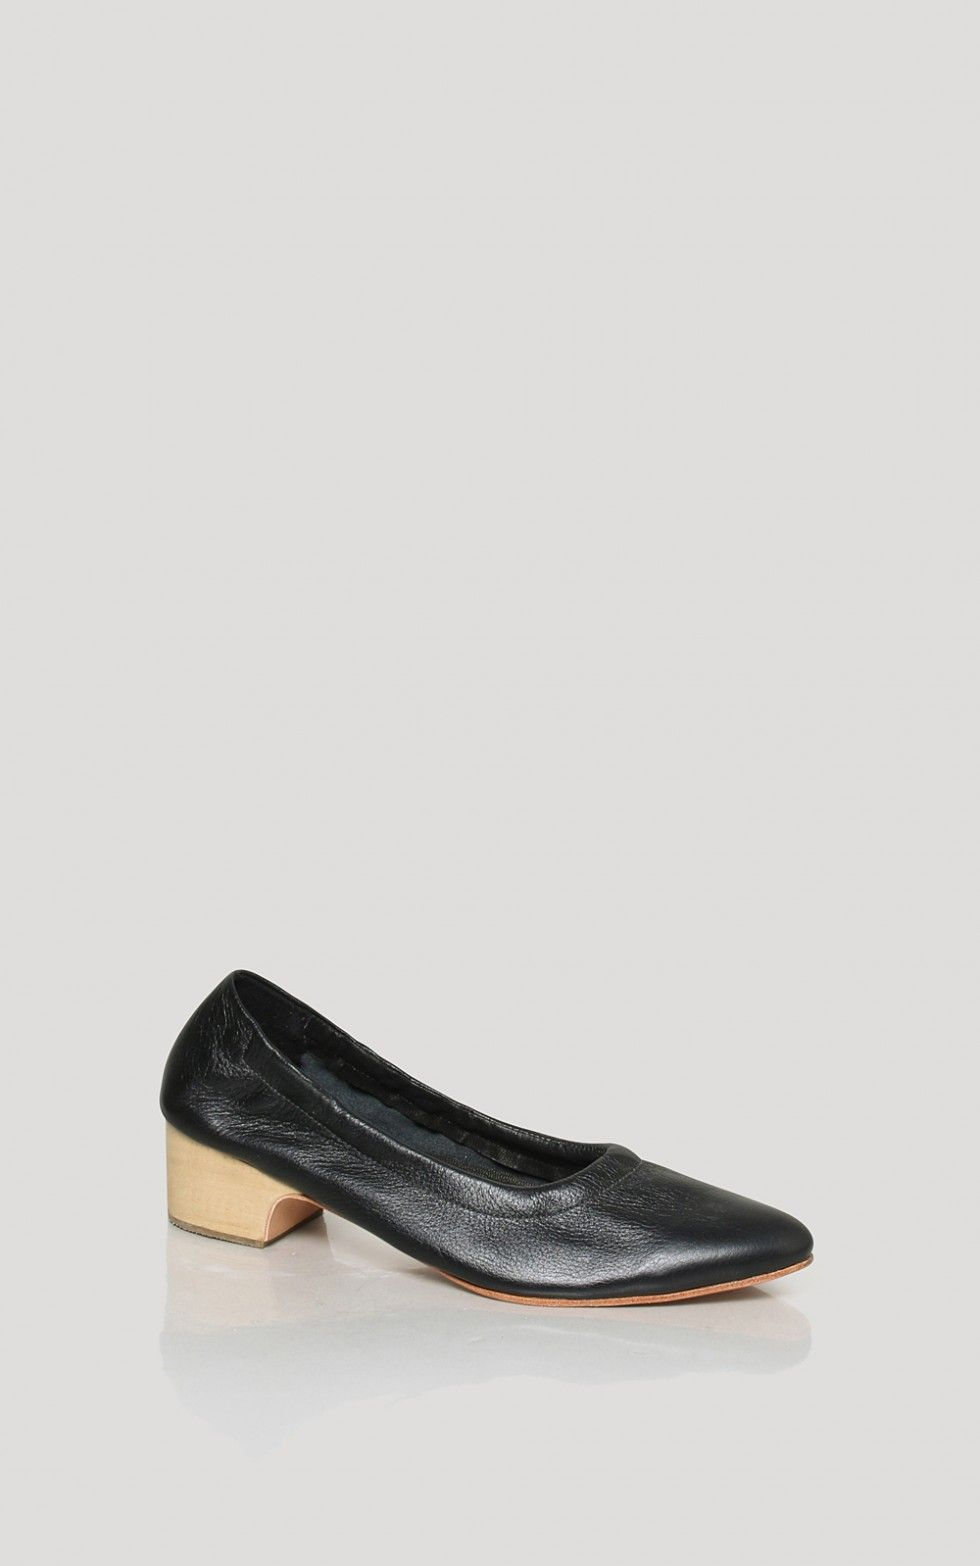 free shipping fake Rachel Comey Leather D'Orsay Flats buy cheap lowest price clearance marketable outlet purchase tY7qXFQt